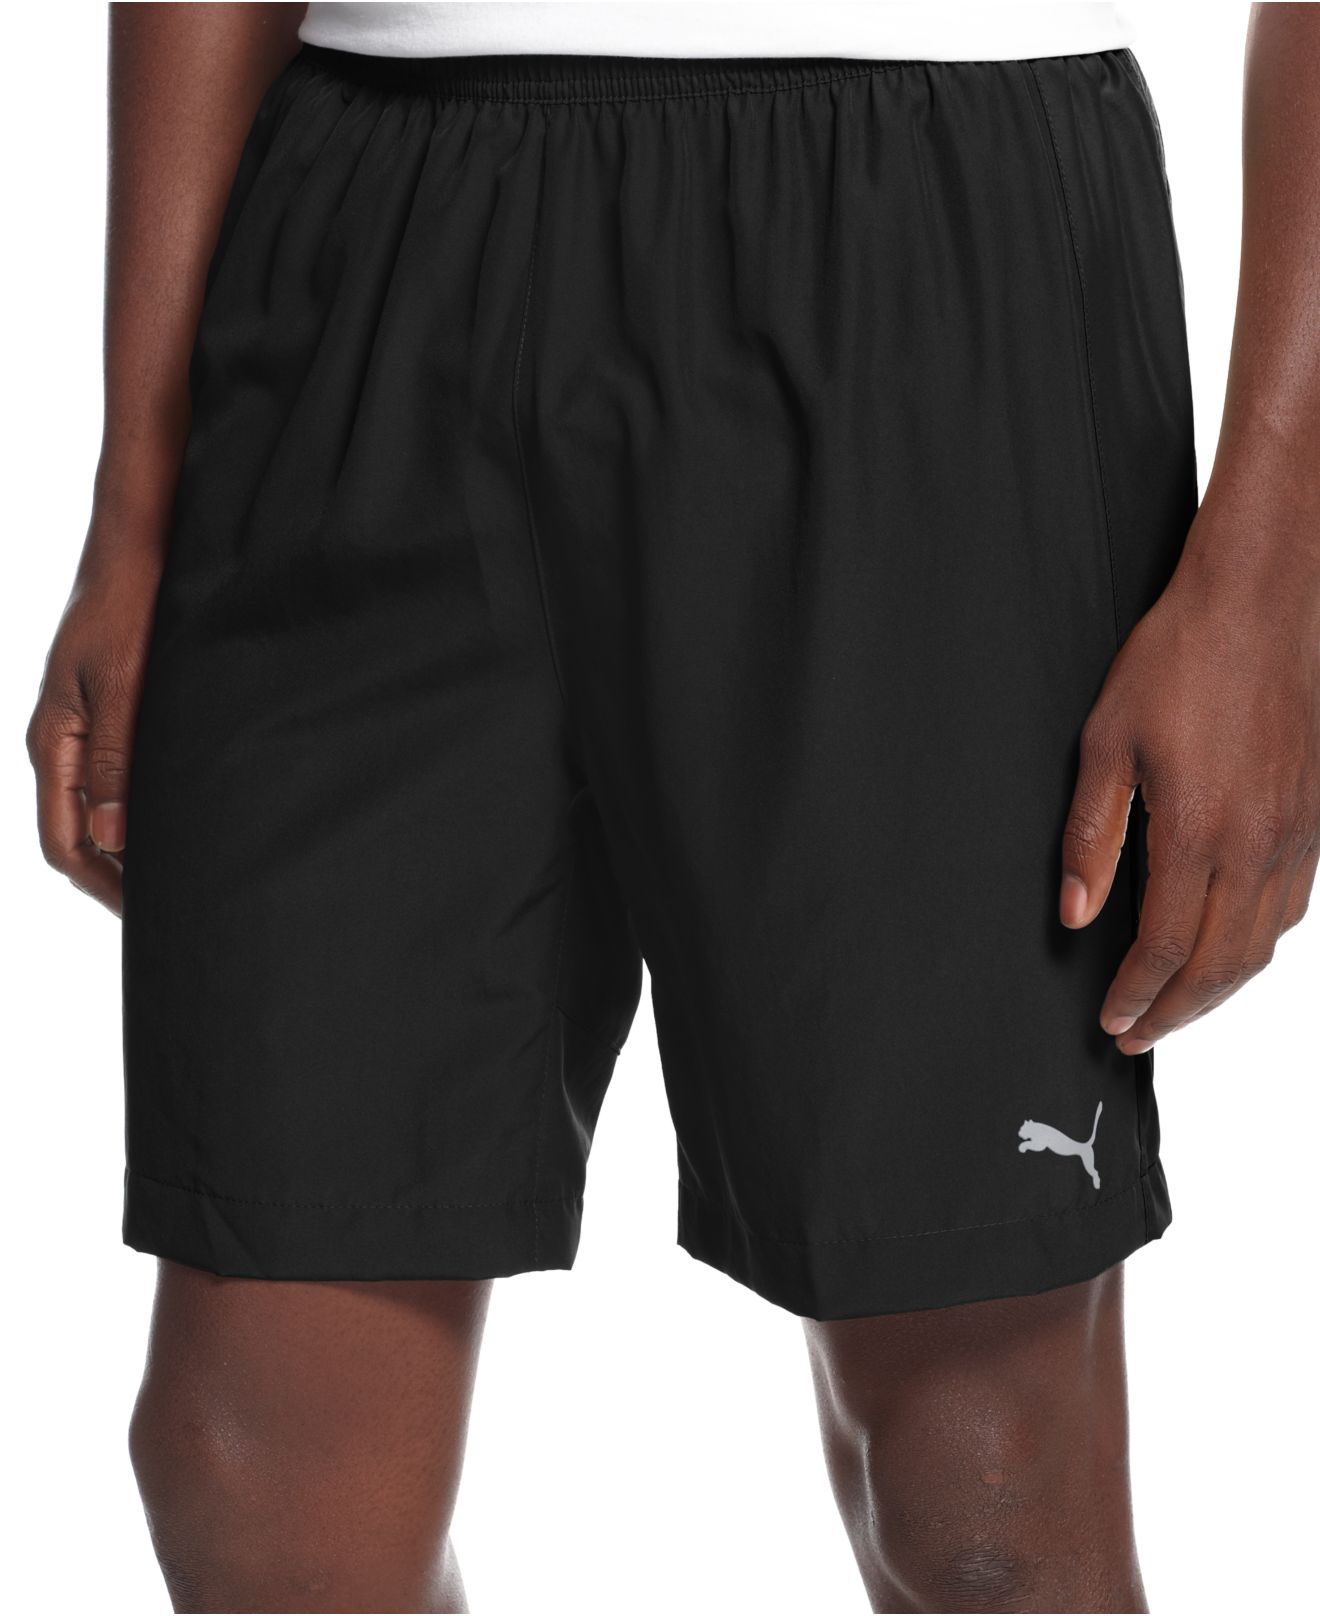 Baggy Black Shorts Baggy Bike Shorts Baggy Cargo Shorts Baggy Floral Shorts Baggy Jean Shorts Baggy Cycling Shorts Baggy Camo Cargo Shorts Baggy Chino Shorts Baggy Cotton Shorts. Stay in the Know! Be the first to know about new arrivals, look books, sales & promos! Company. About Us. Our Designers.